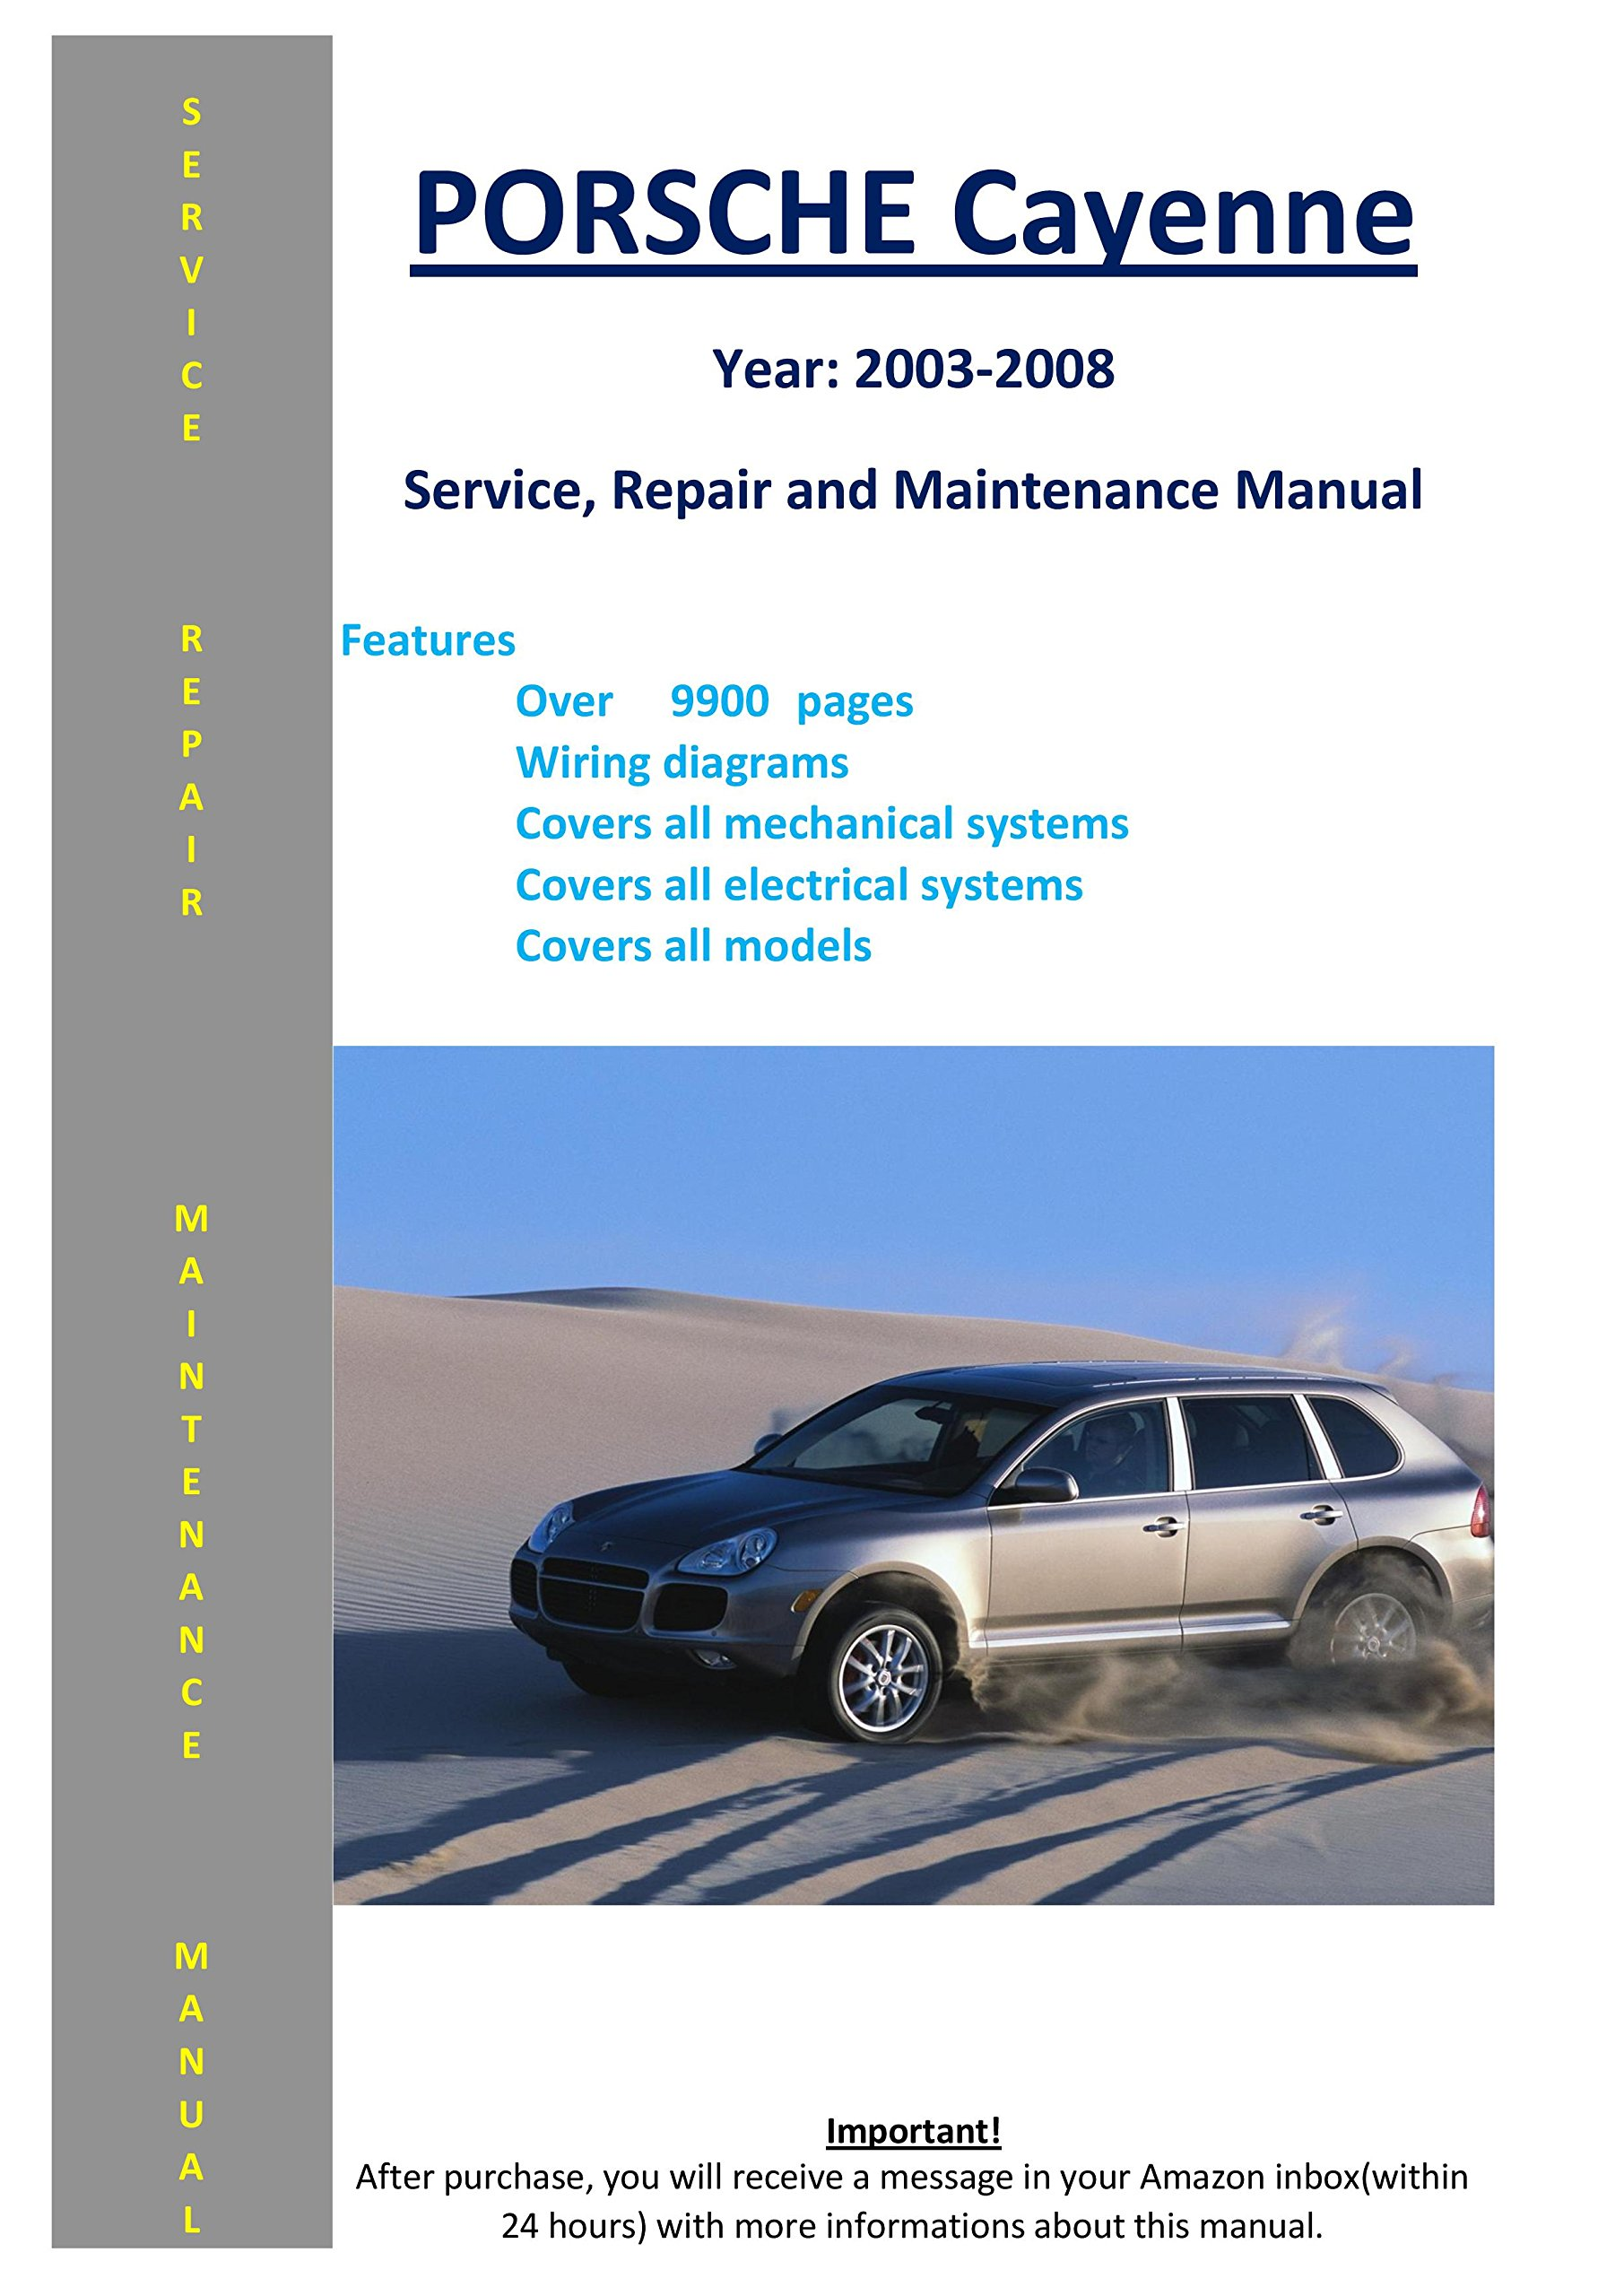 Porsche Cayenne From 2003-2008 Service Repair Maintenance Manual: SoftAuto  Manuals: 5048056045557: Amazon.com: Books